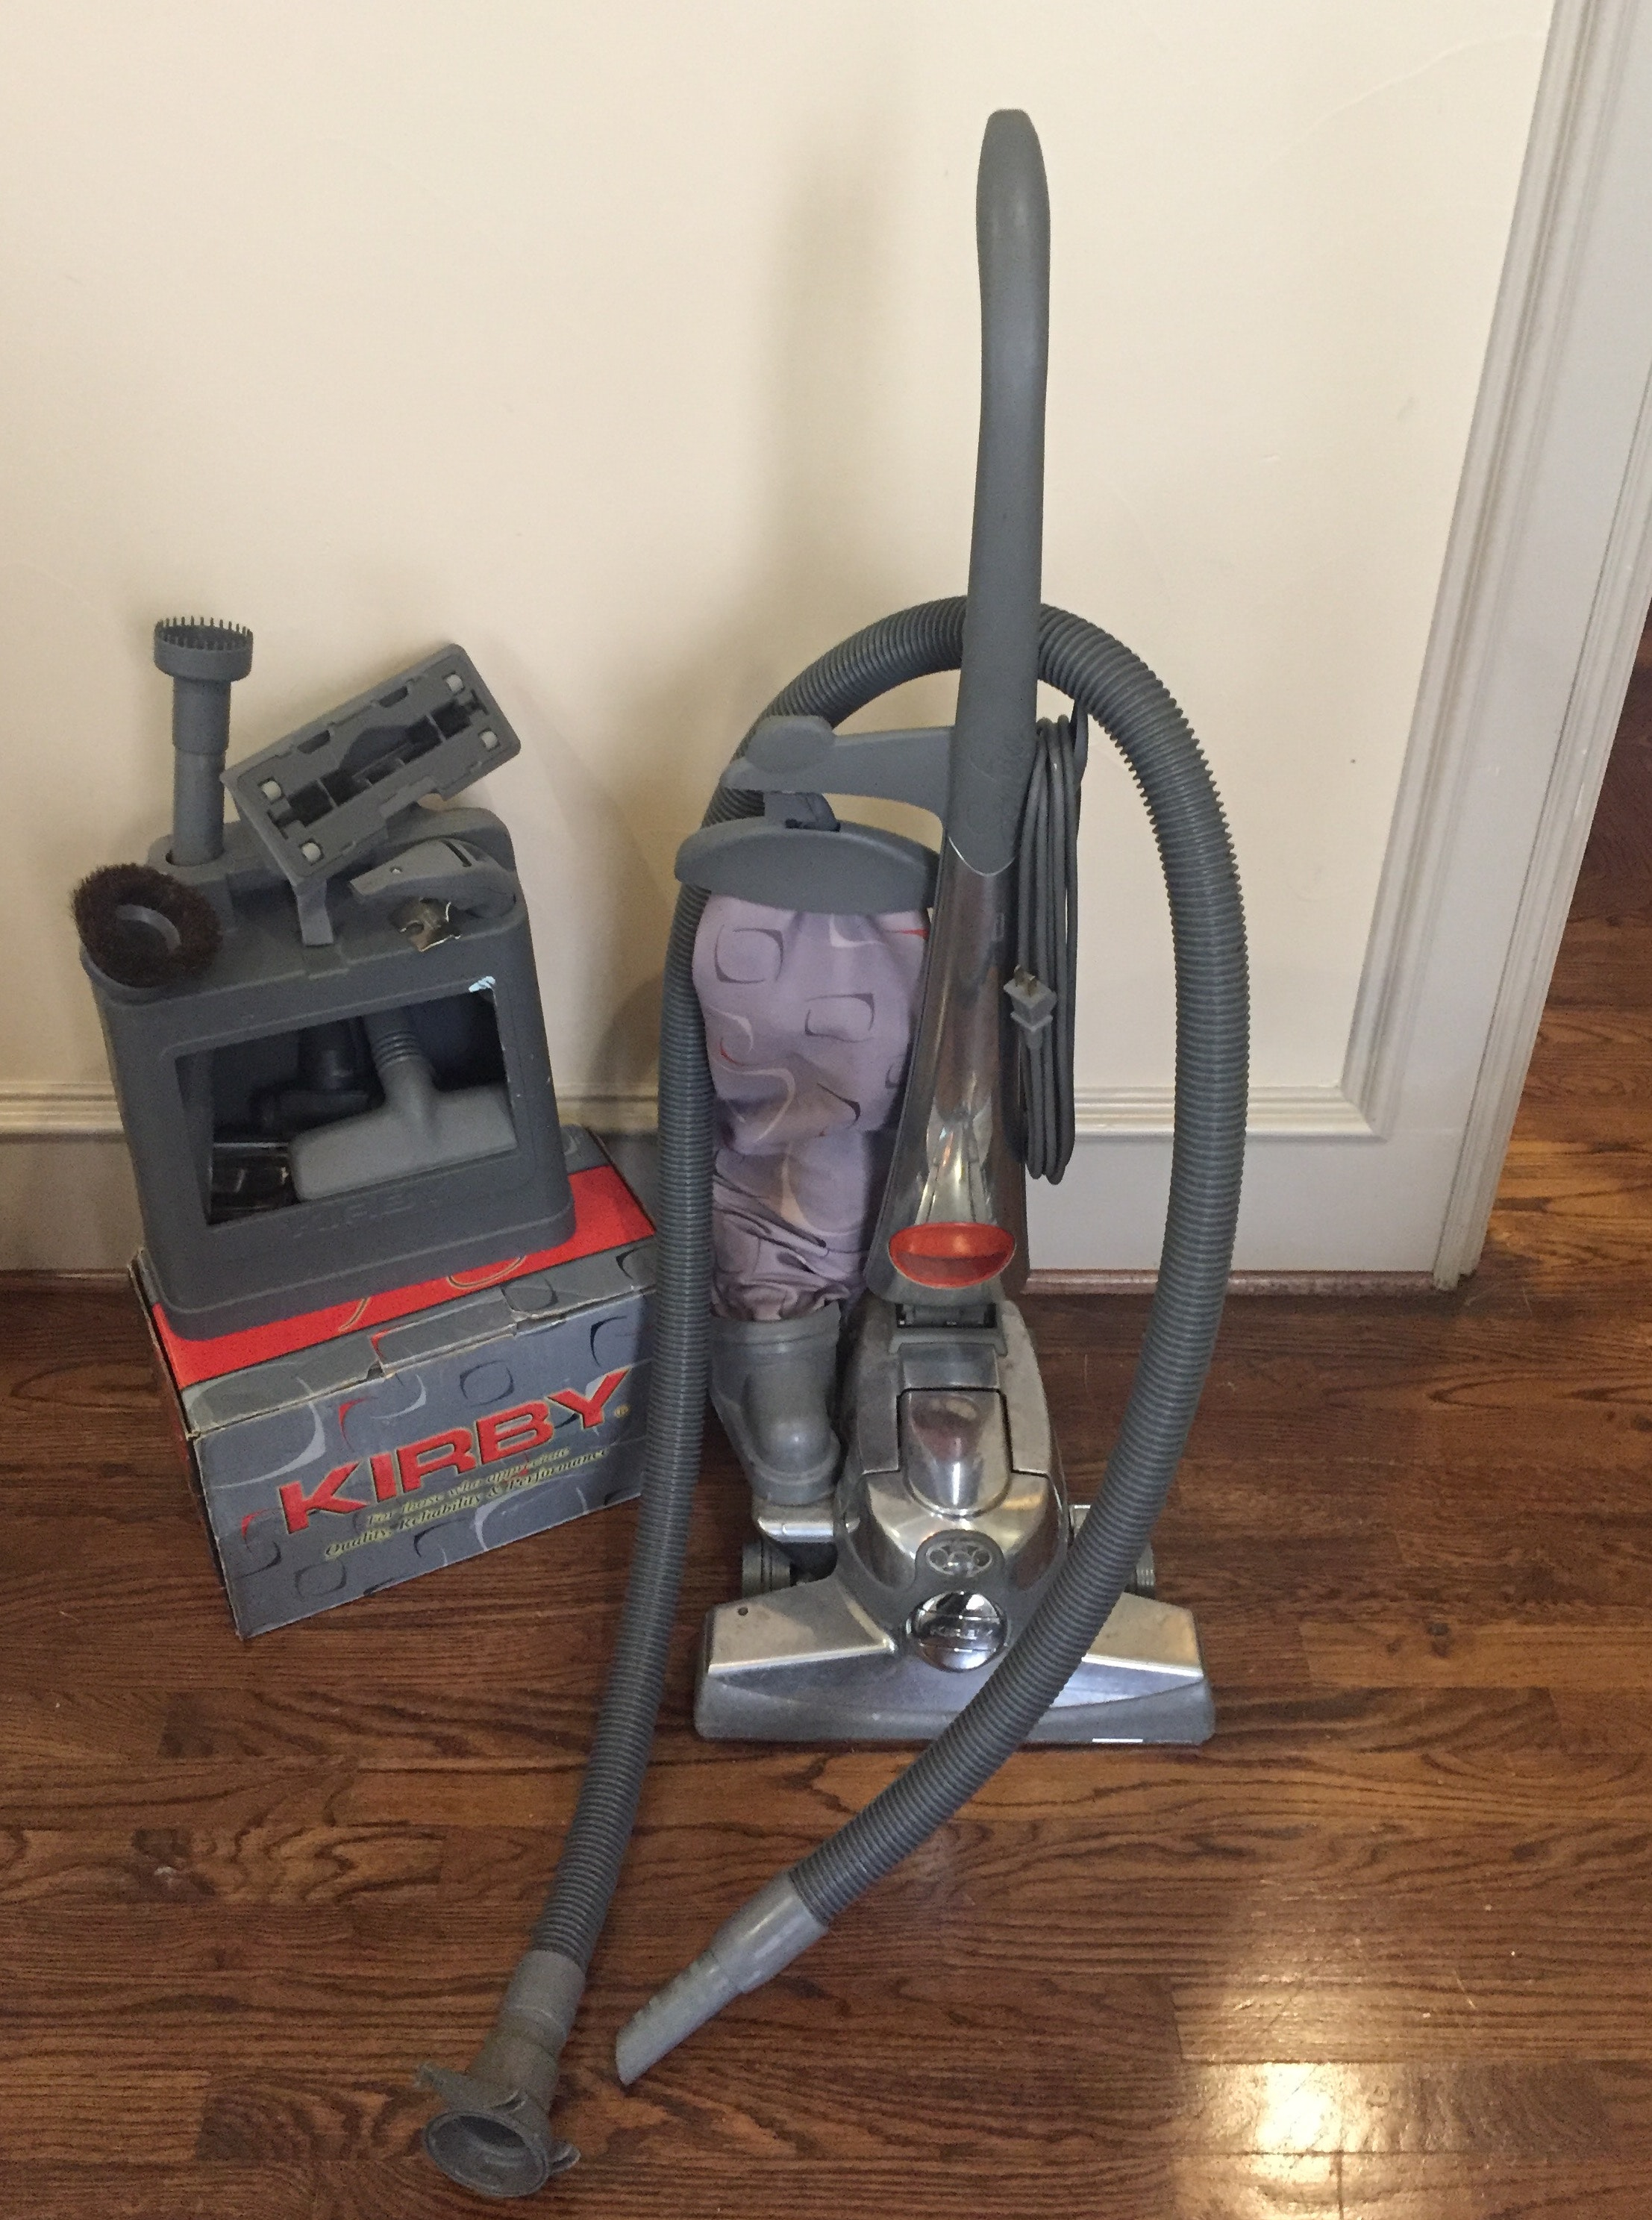 Kirby Vacuum with Accessories